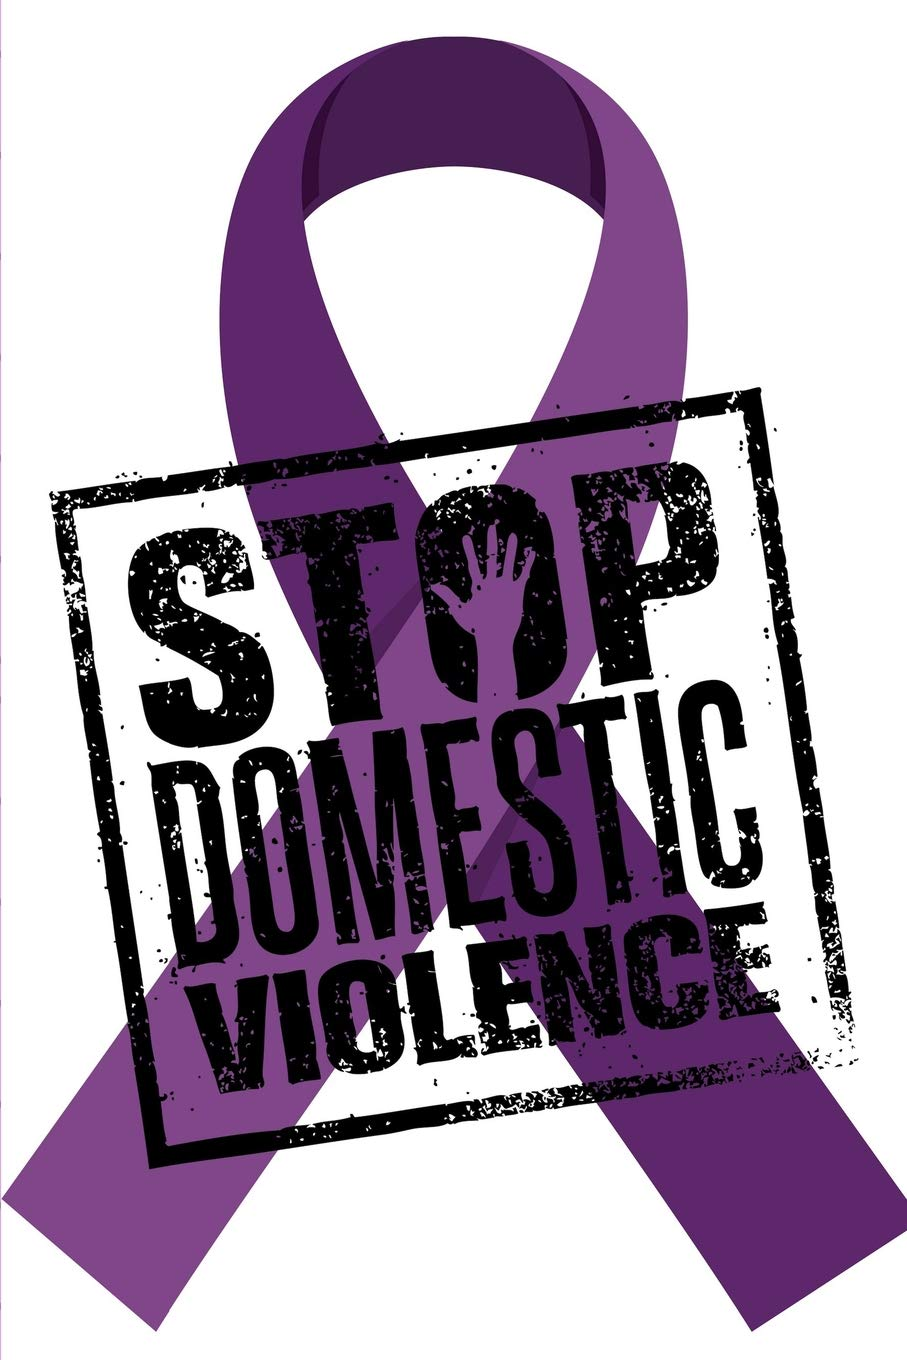 Victim Advocacy: Domestic Violence in Our Communities